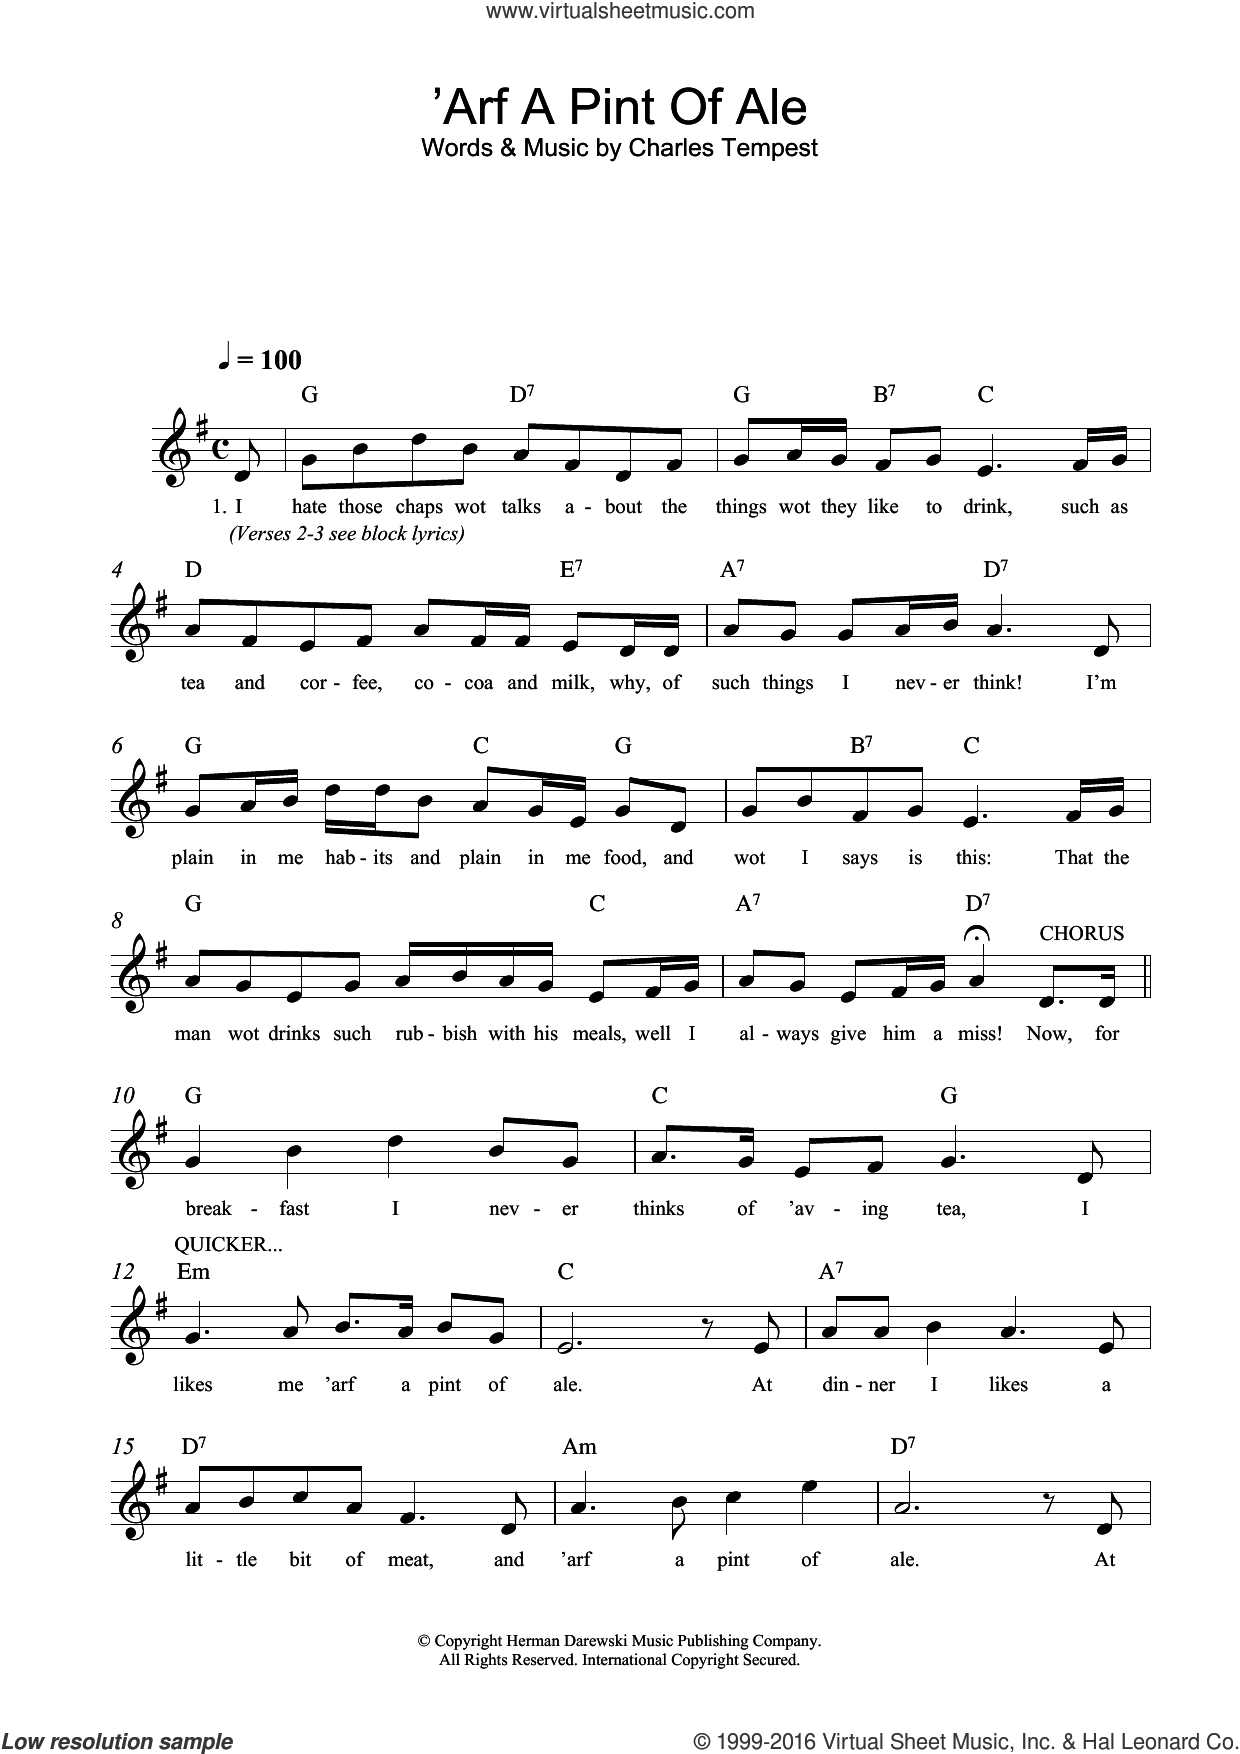 'Arf A Pint Of Ale sheet music for voice and other instruments (fake book) by Charles Tempest. Score Image Preview.